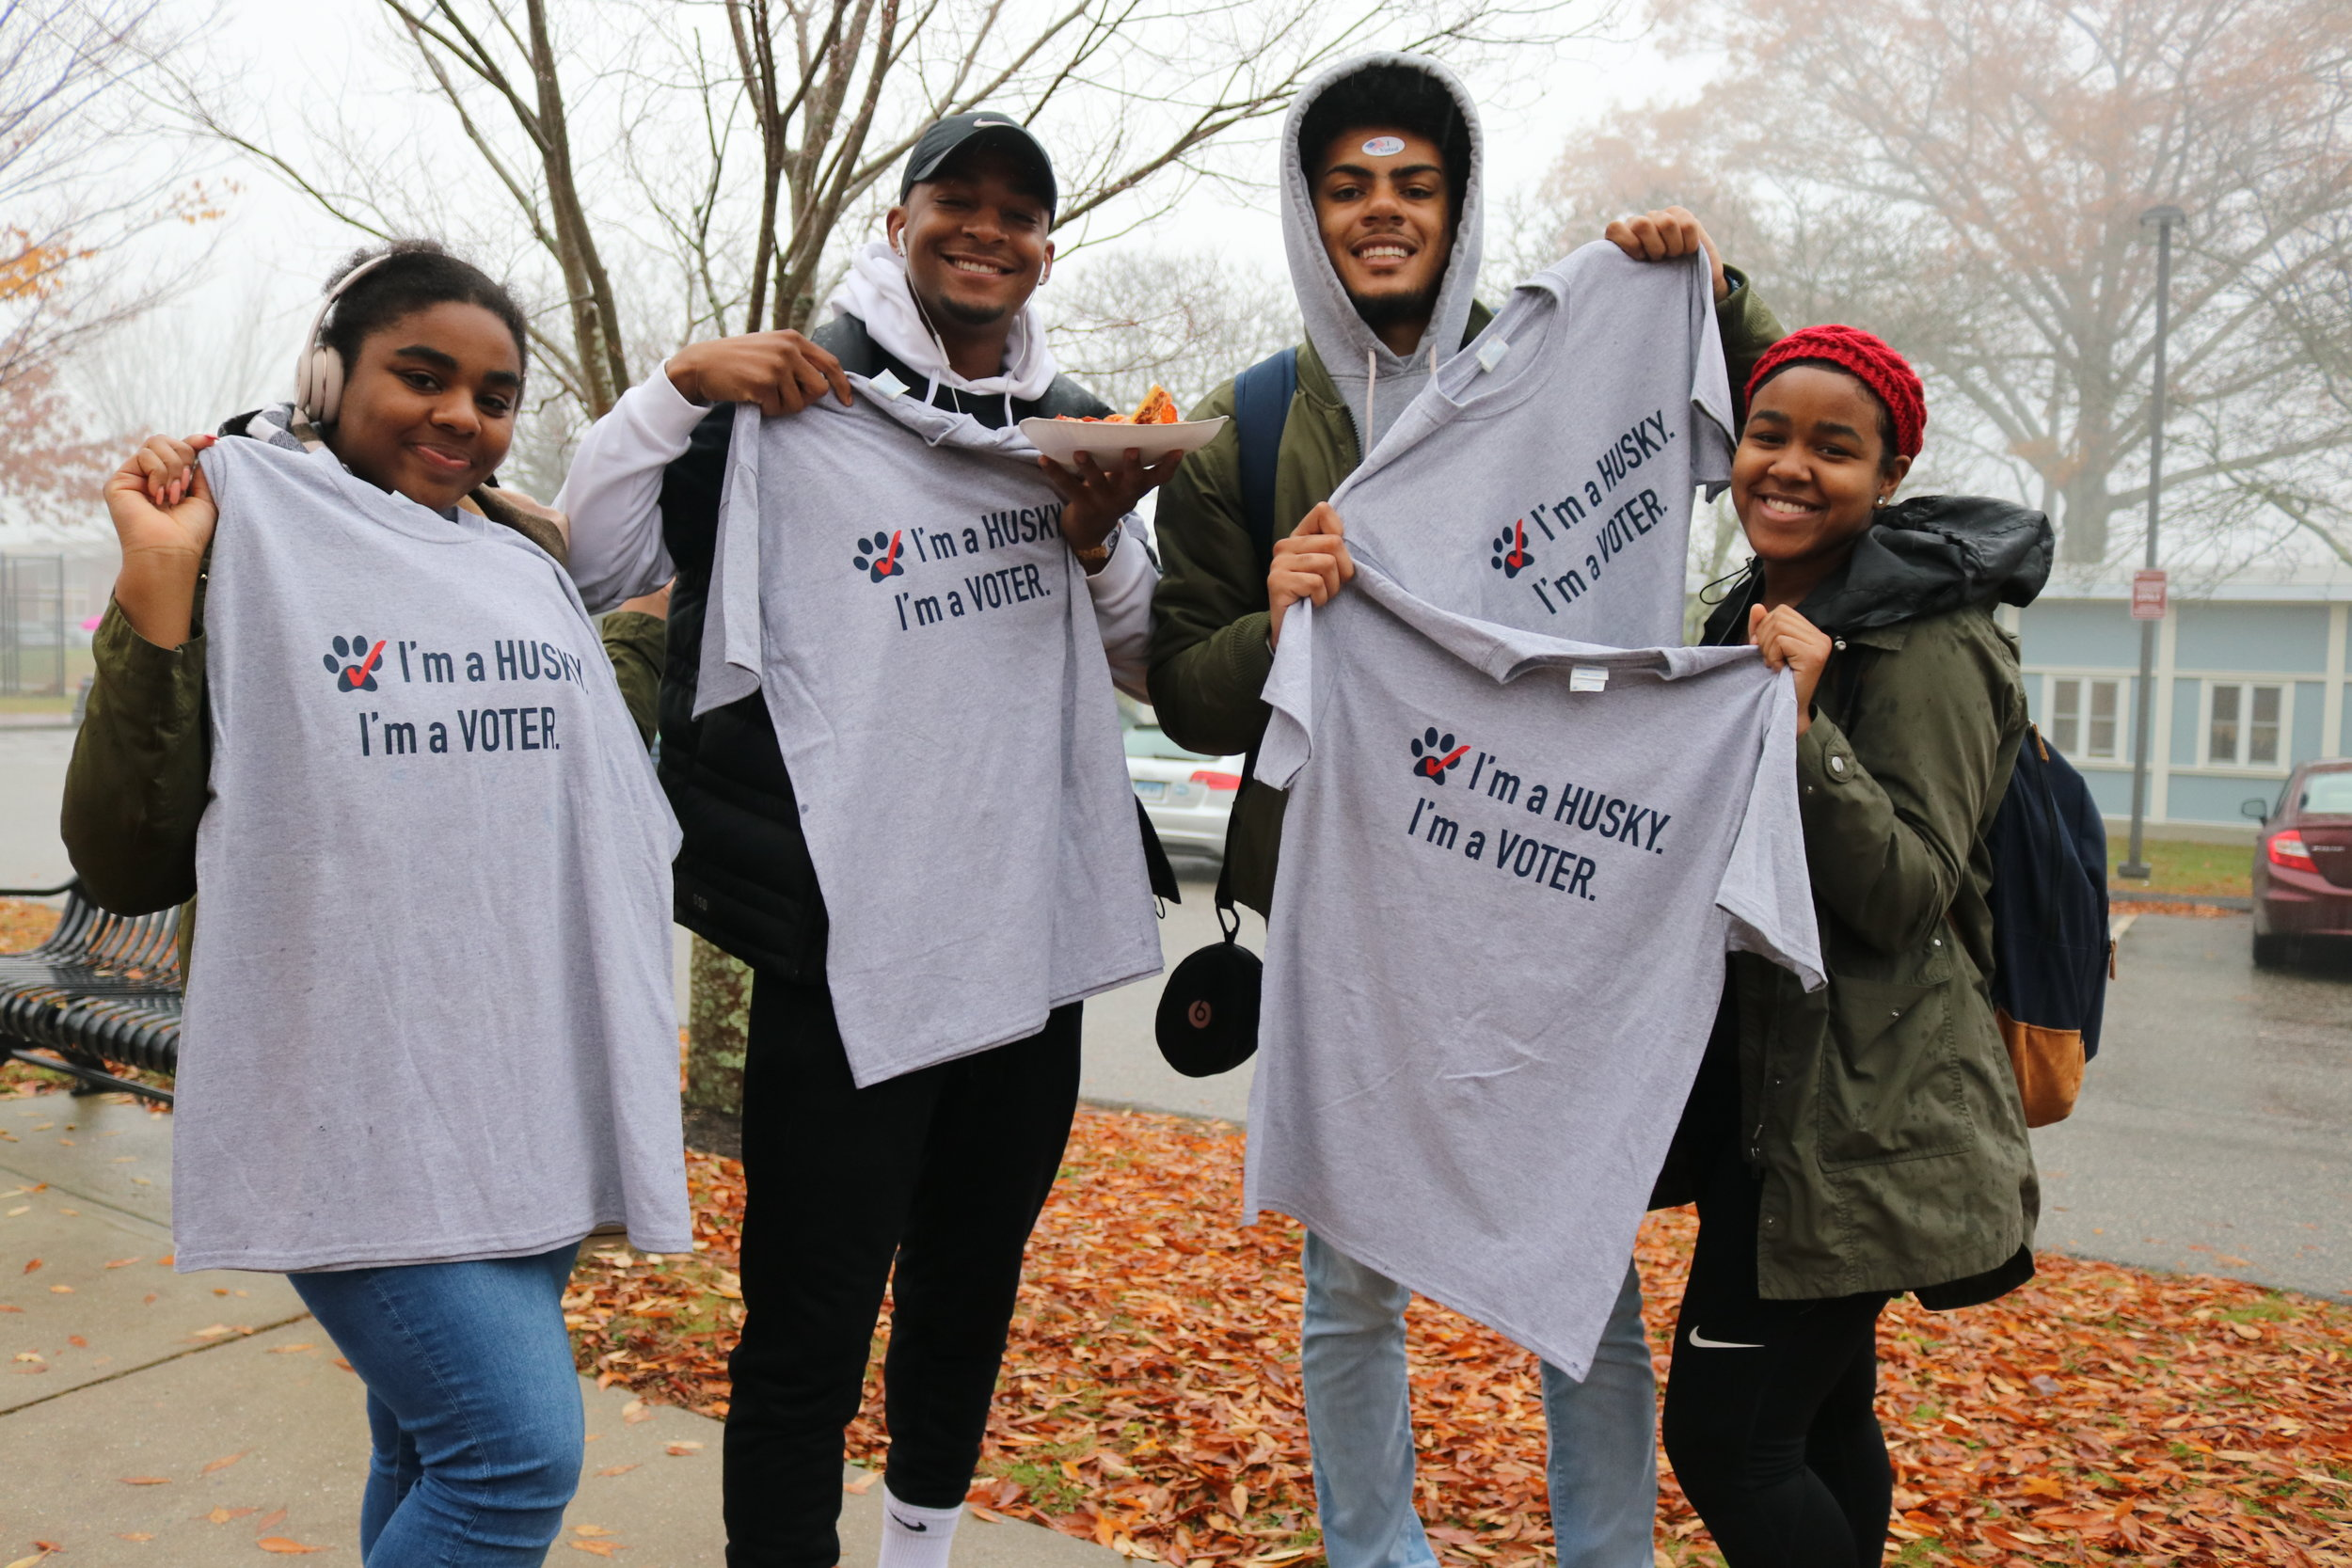 A little rain didn't stop students from getting out to the polls. (Maggie Chafouleas/The Daily Campus)